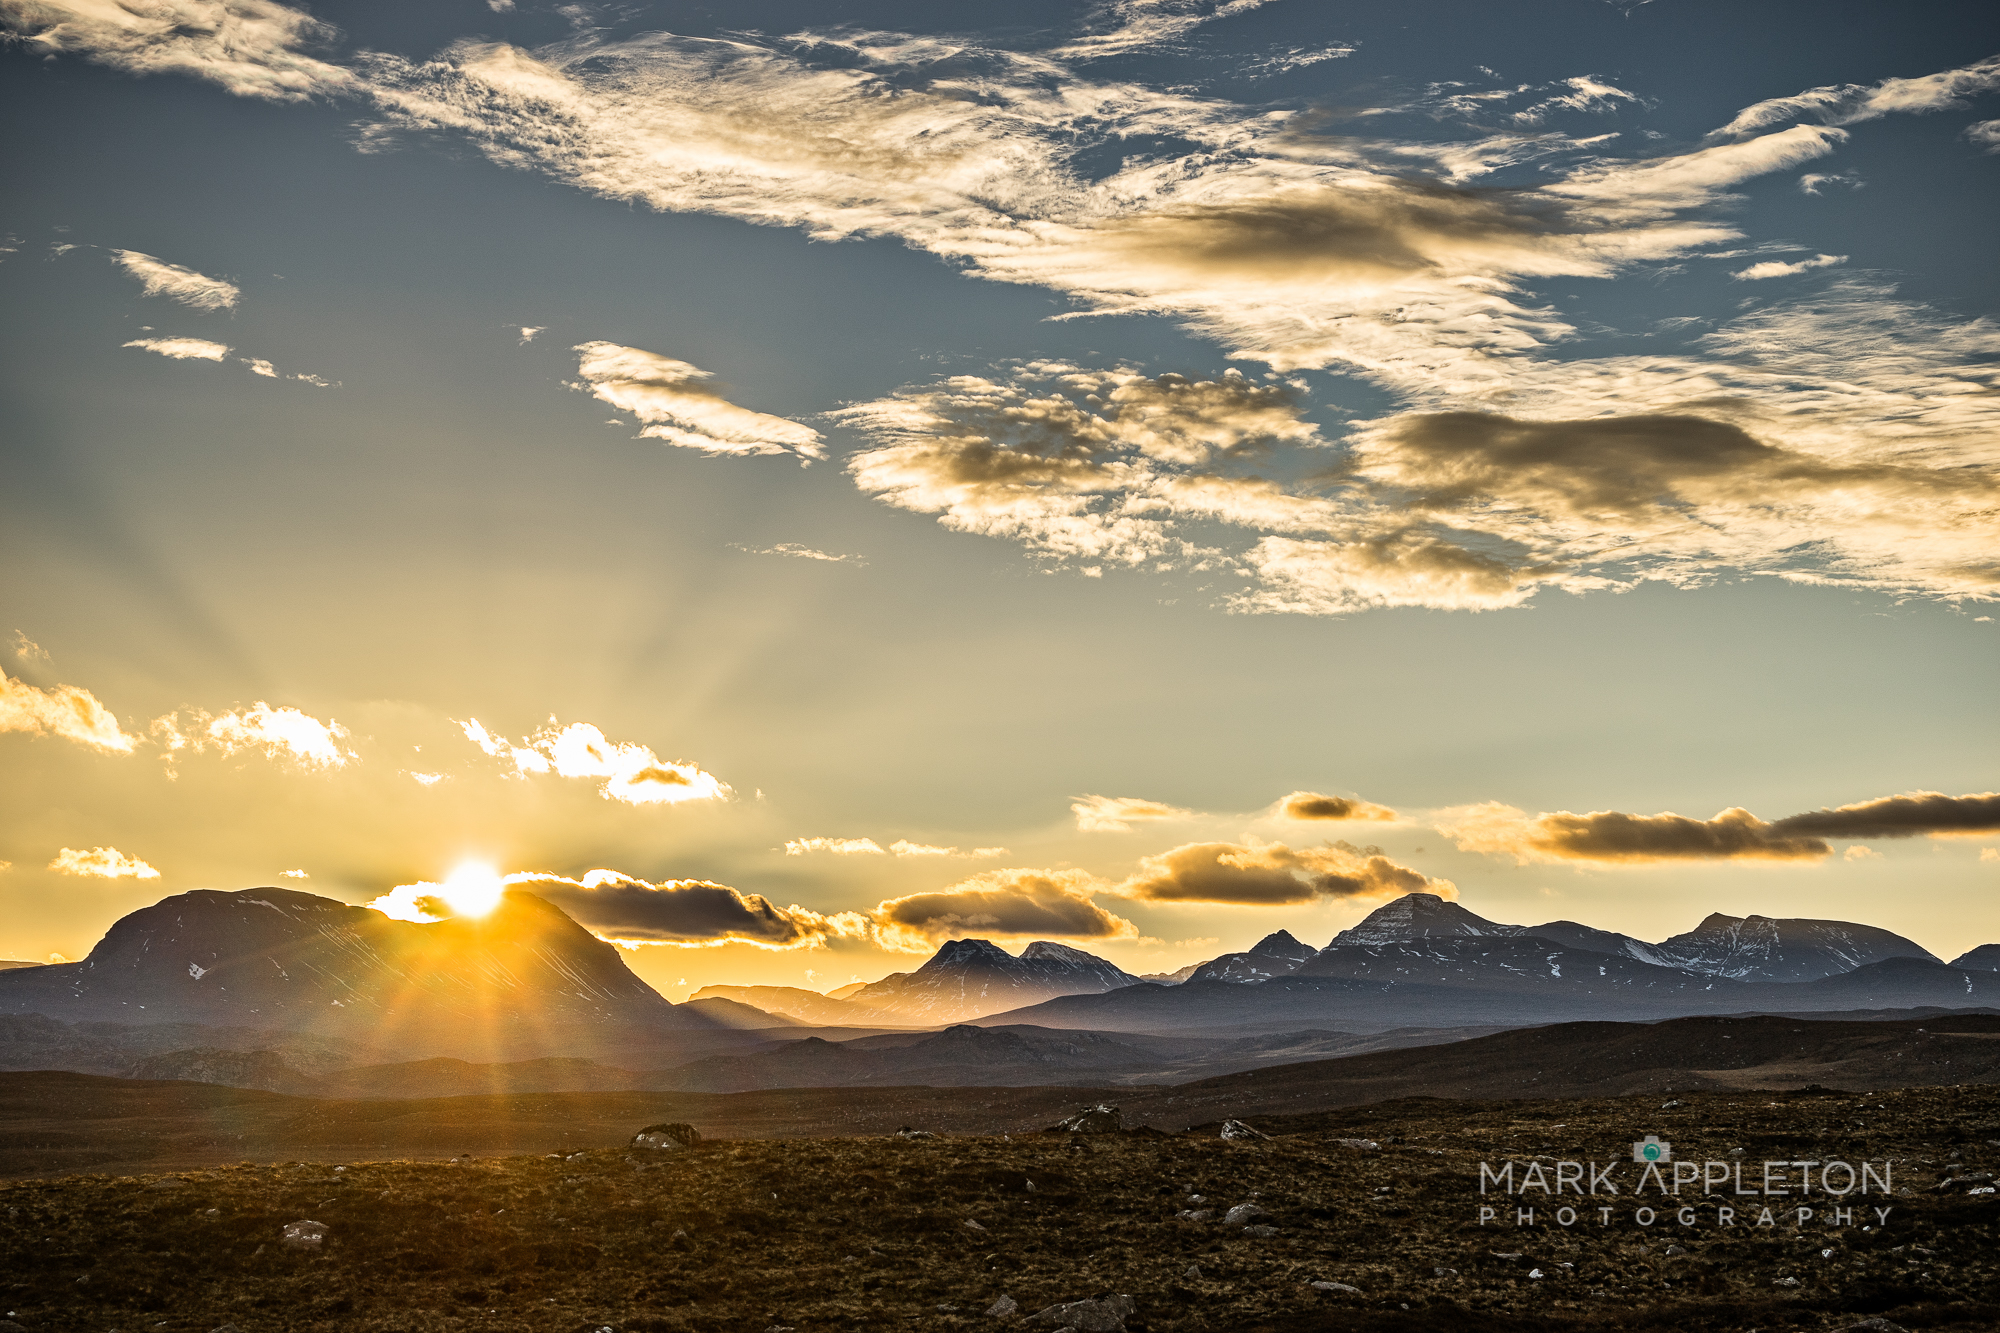 Sunrise over the Torridon mountains